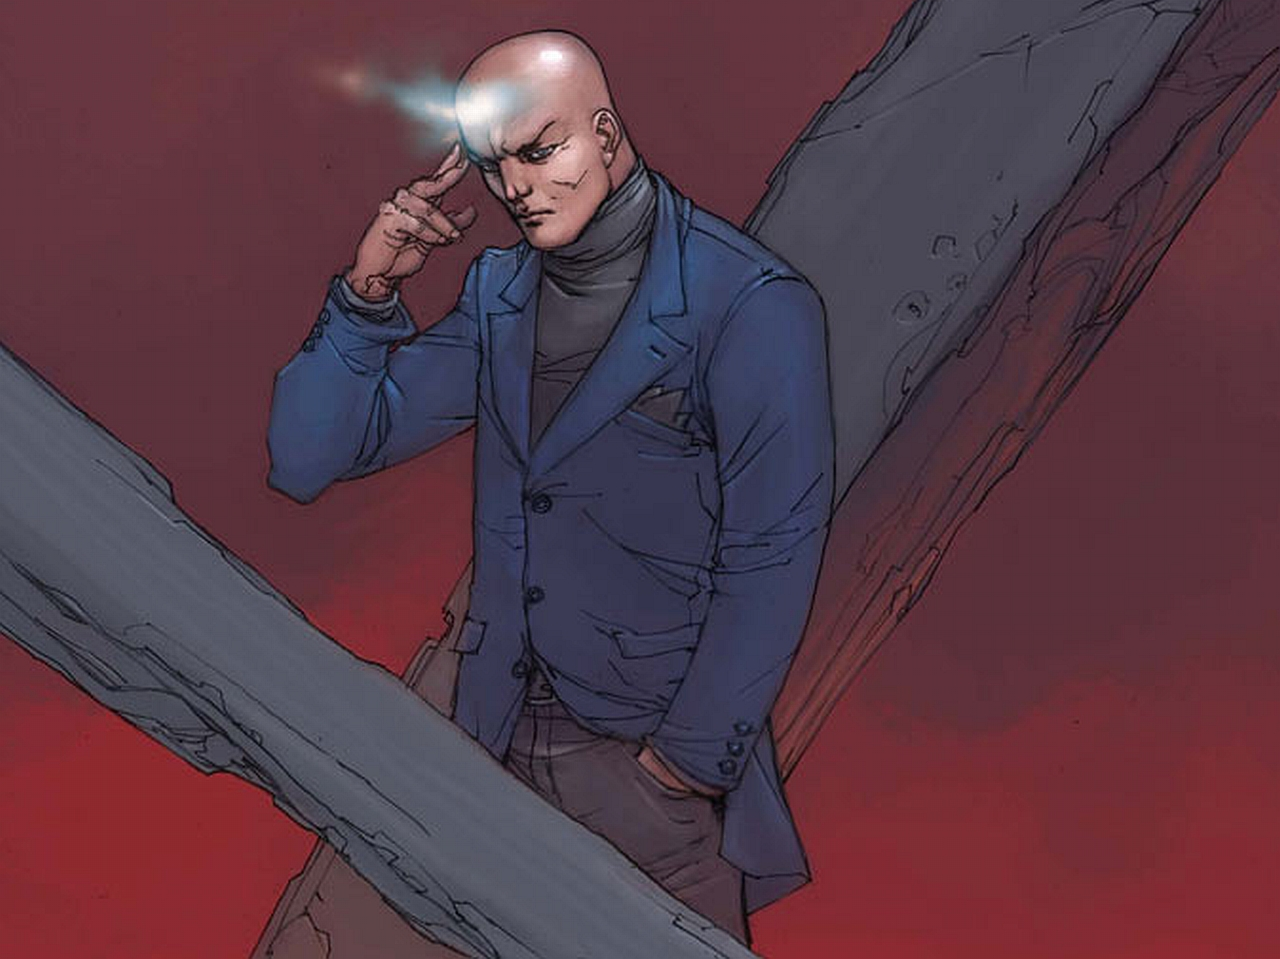 Professor X Wallpaper and Background Image 1280x959 ID215003 1280x959